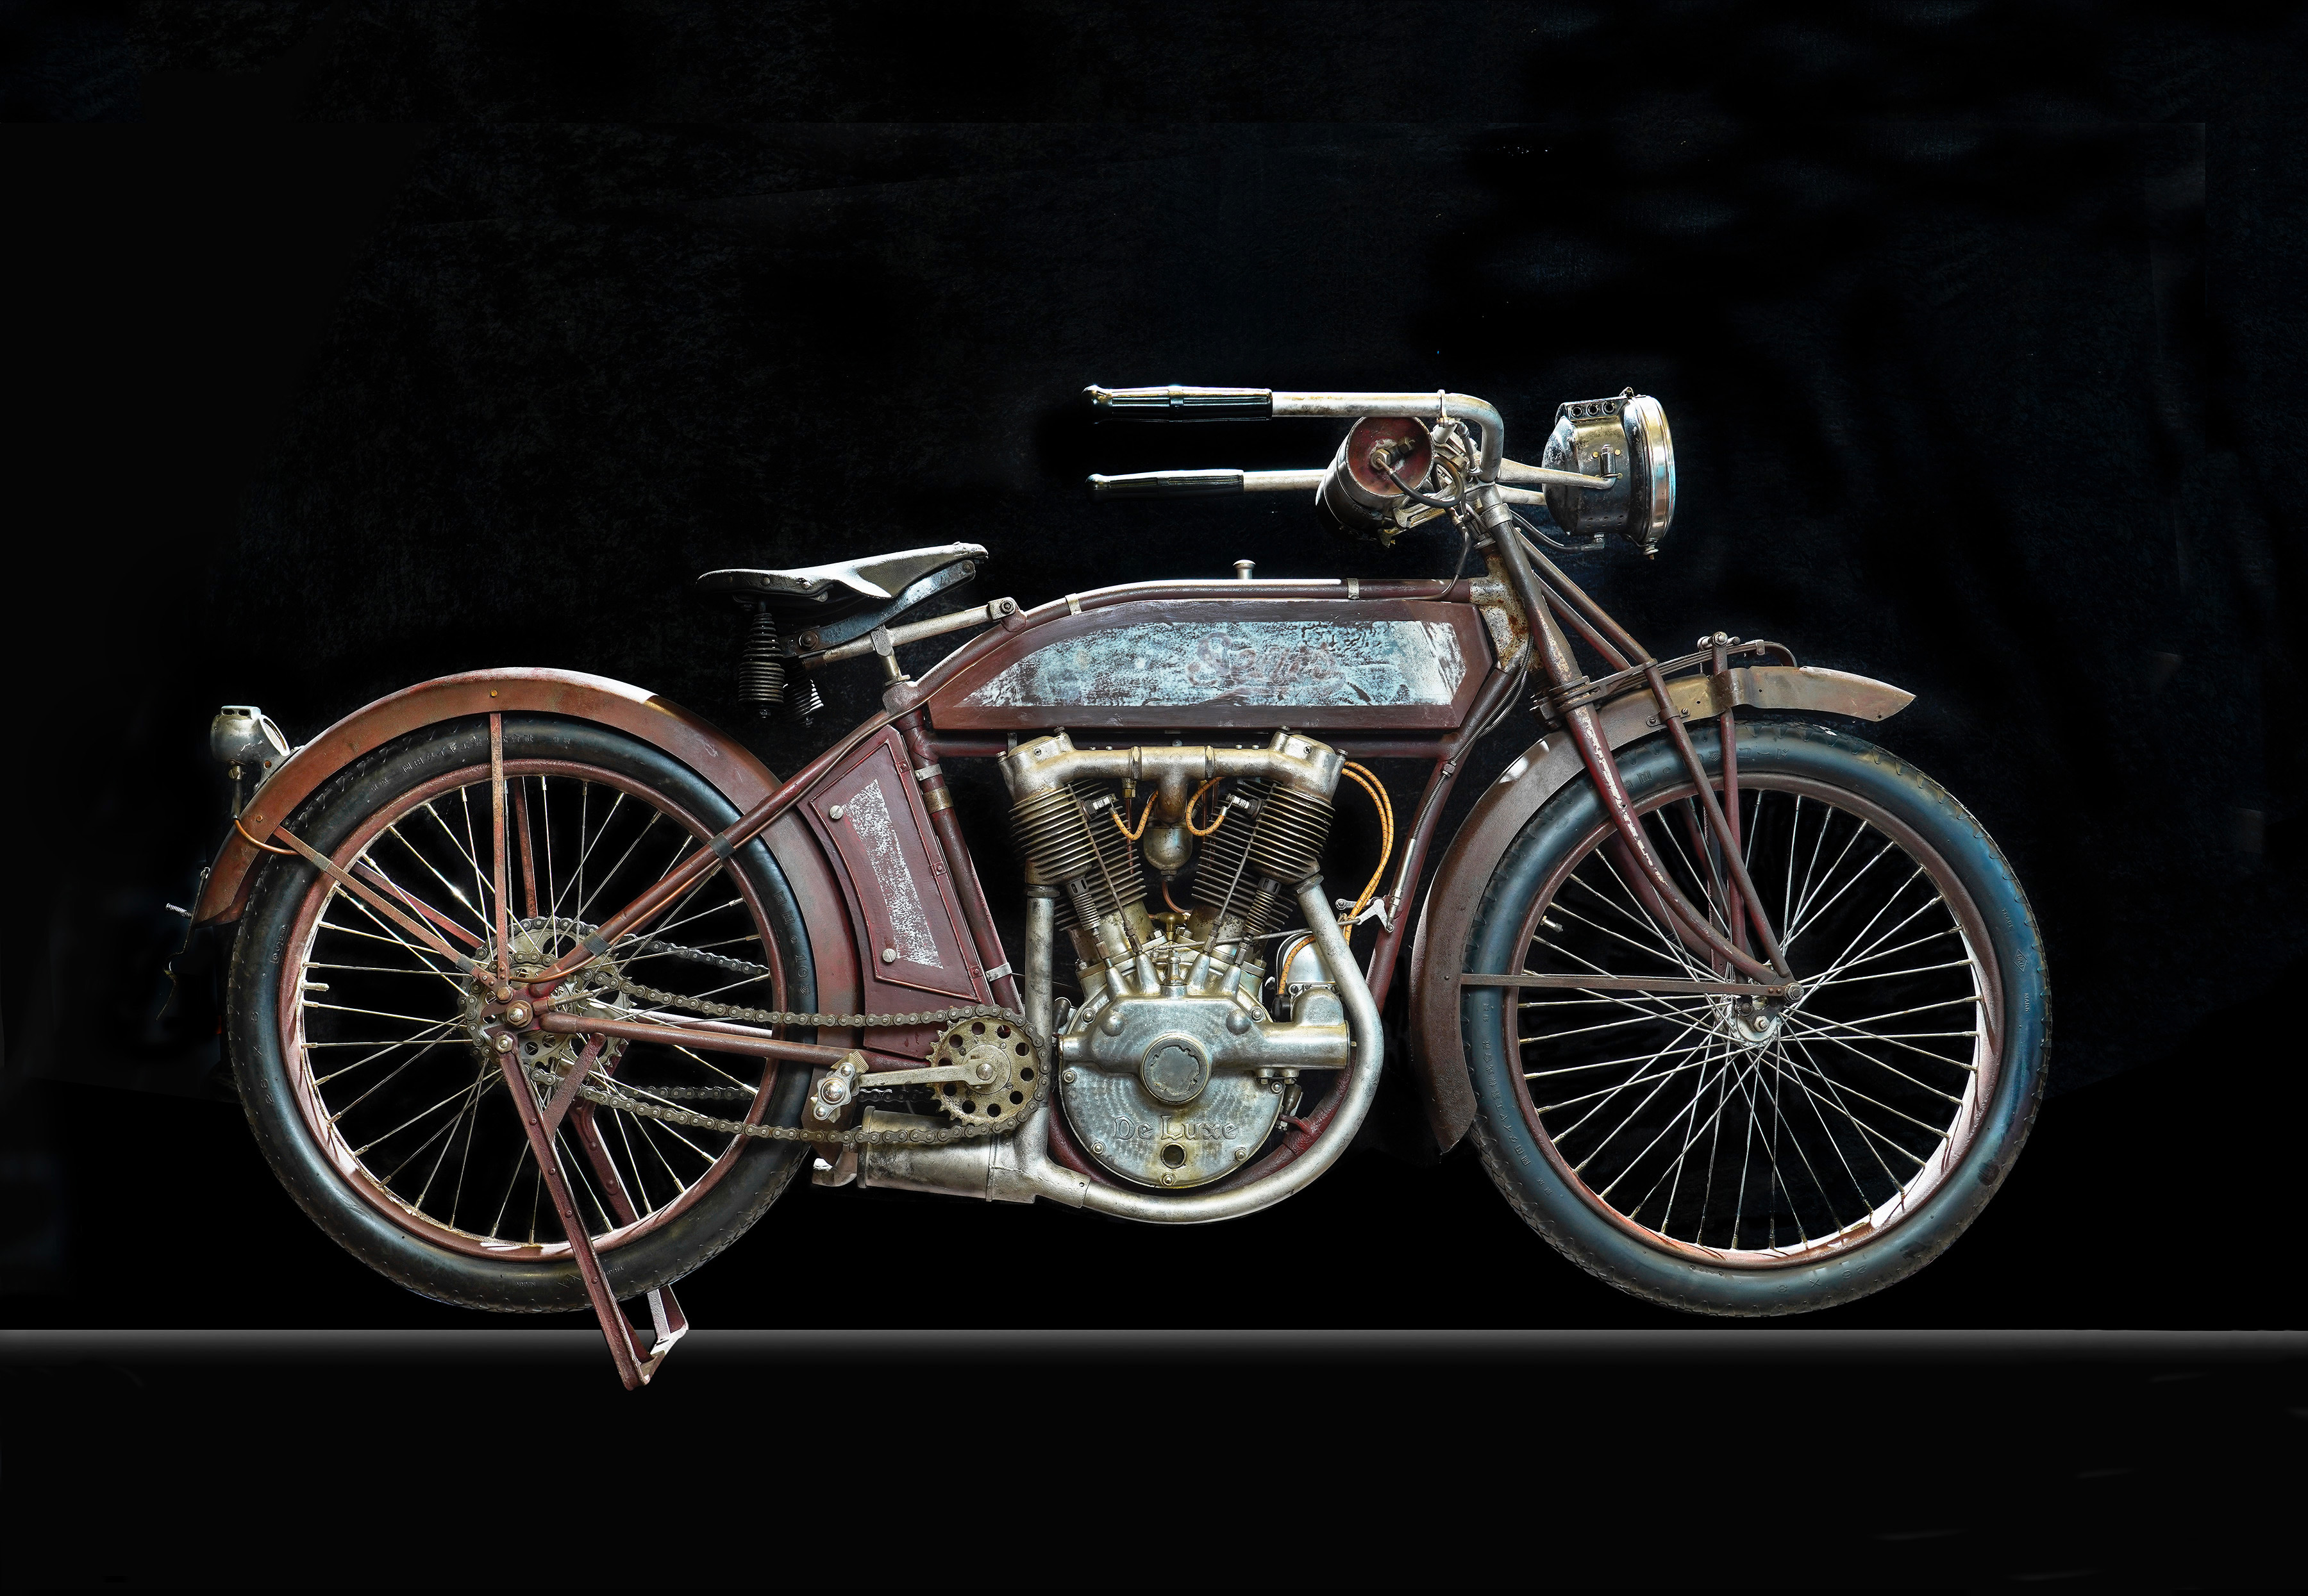 Motorcycles, Time Machines III: The Age of Elegance, ClassicCars.com Journal